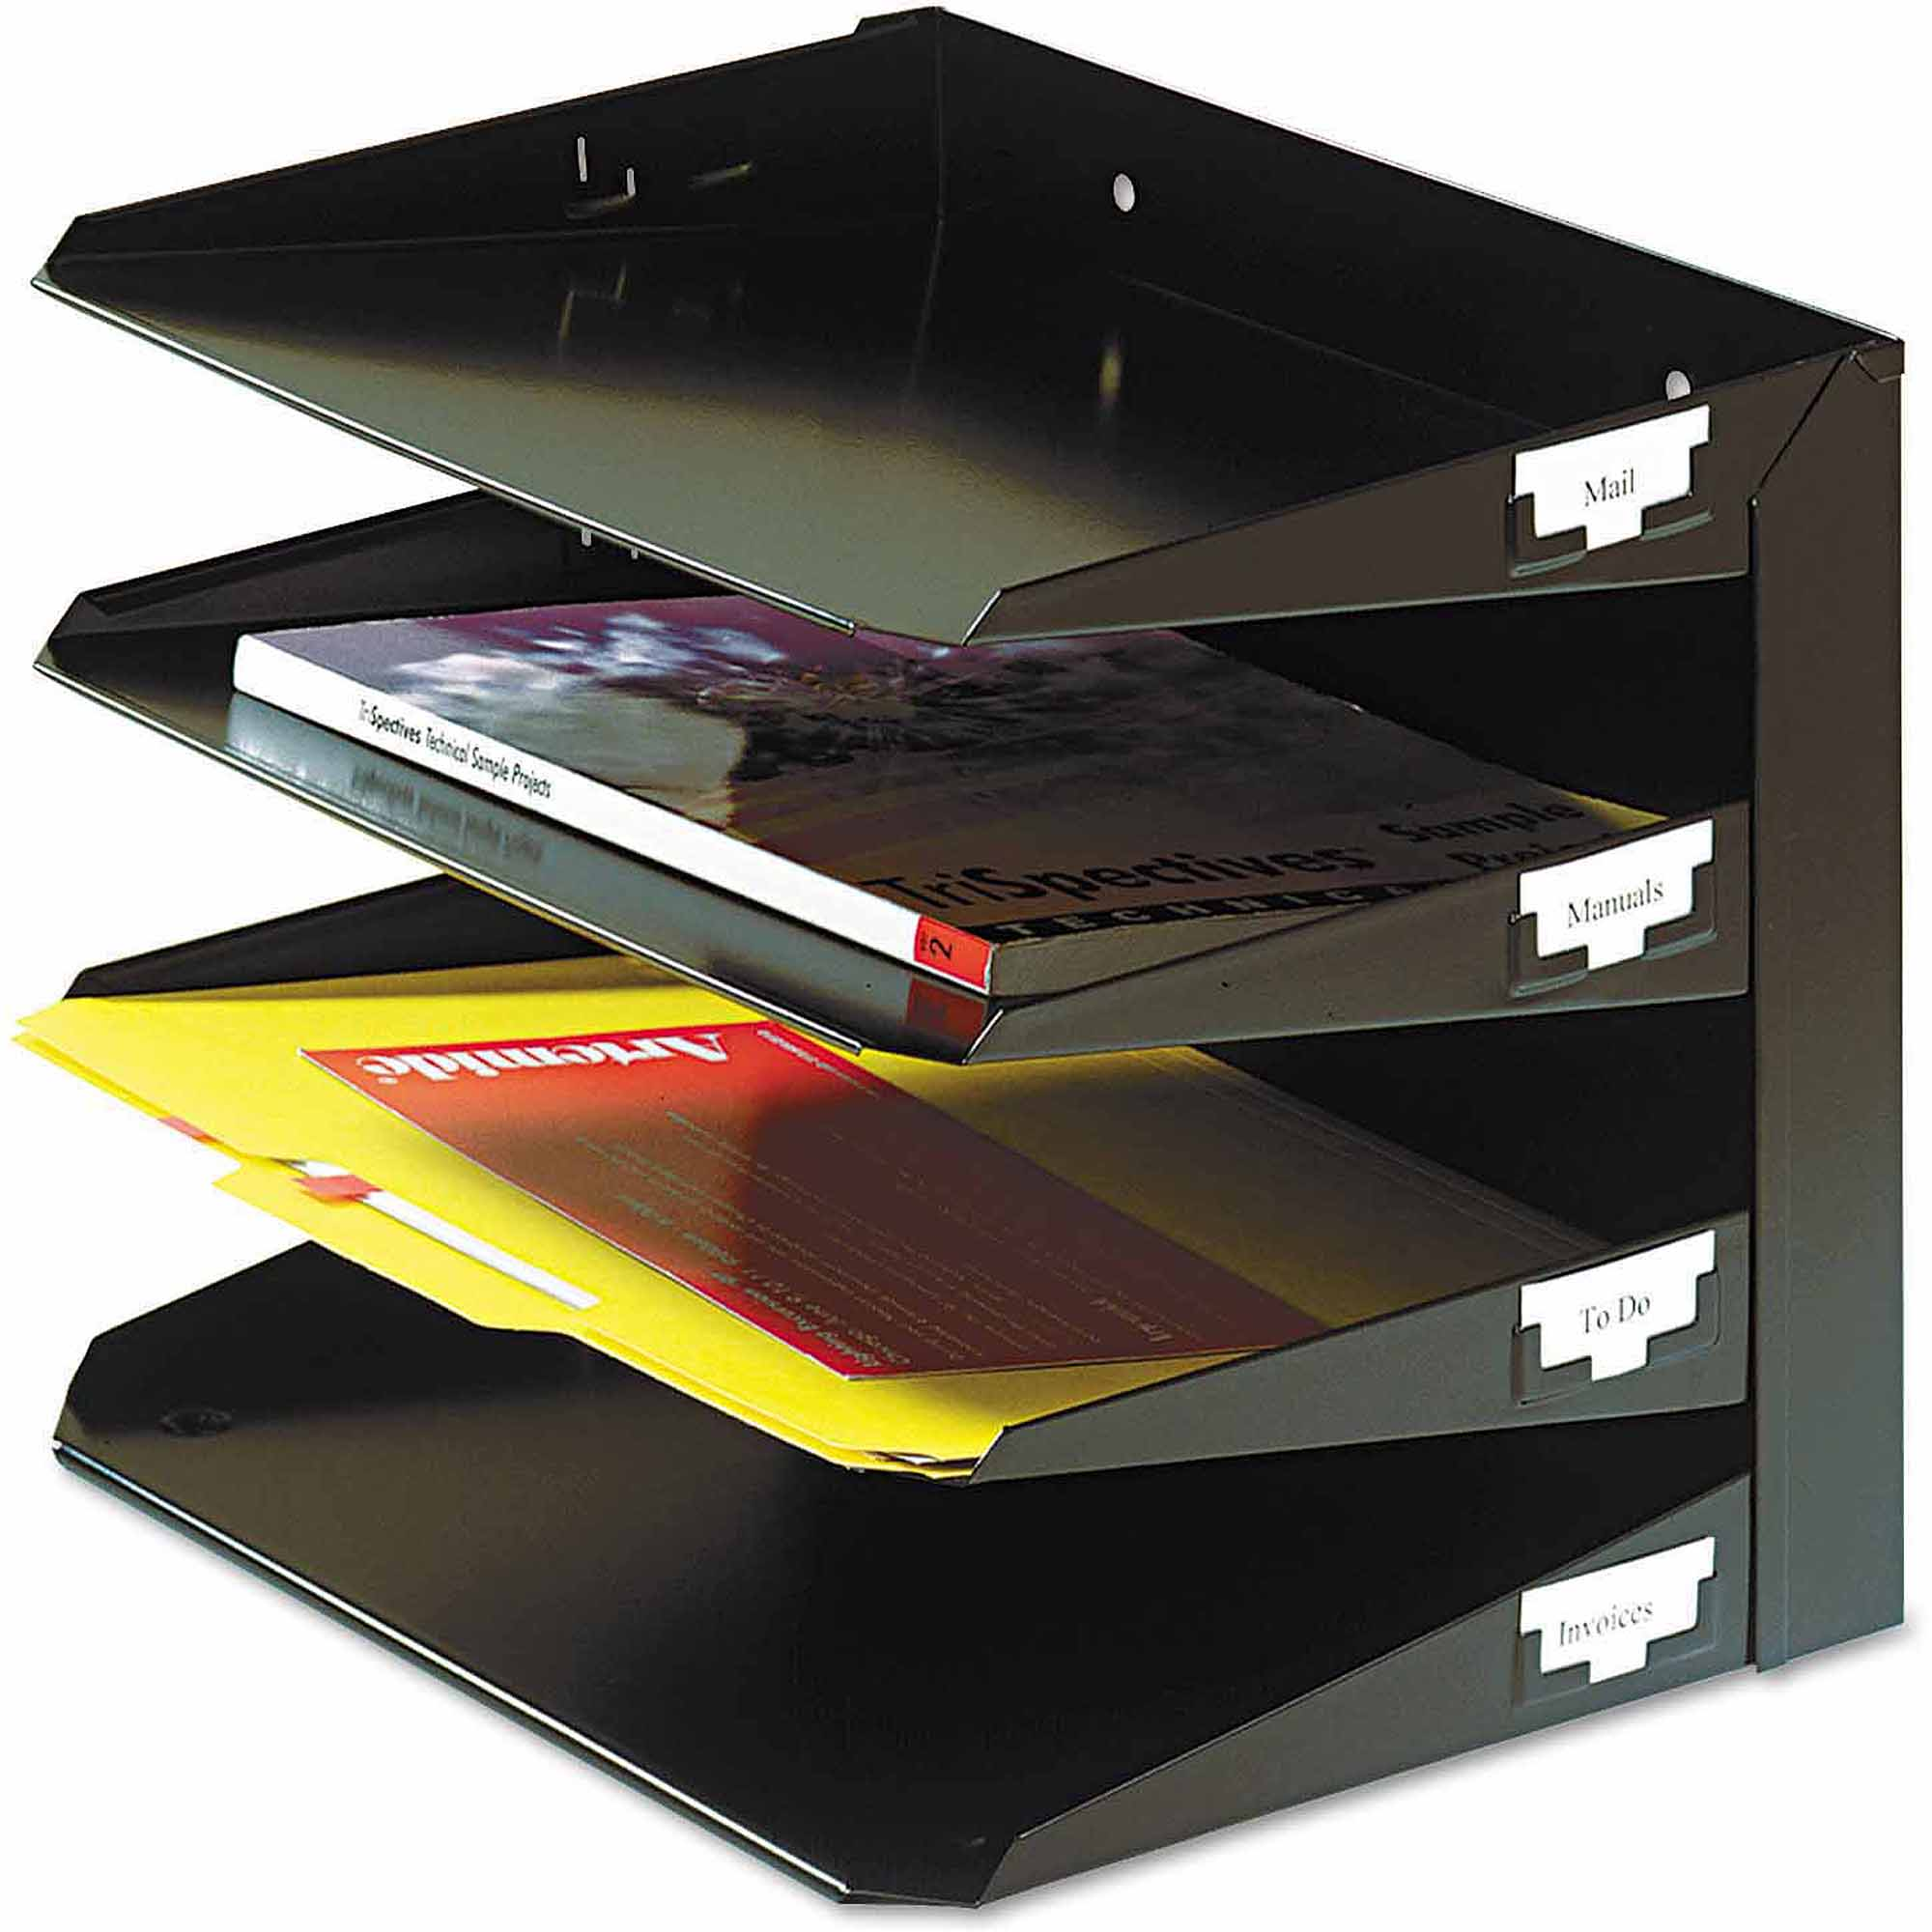 SteelMaster Steelmaster Multi-Tier Horizontal Letter Organizers, 4-Tier, Steel, Black